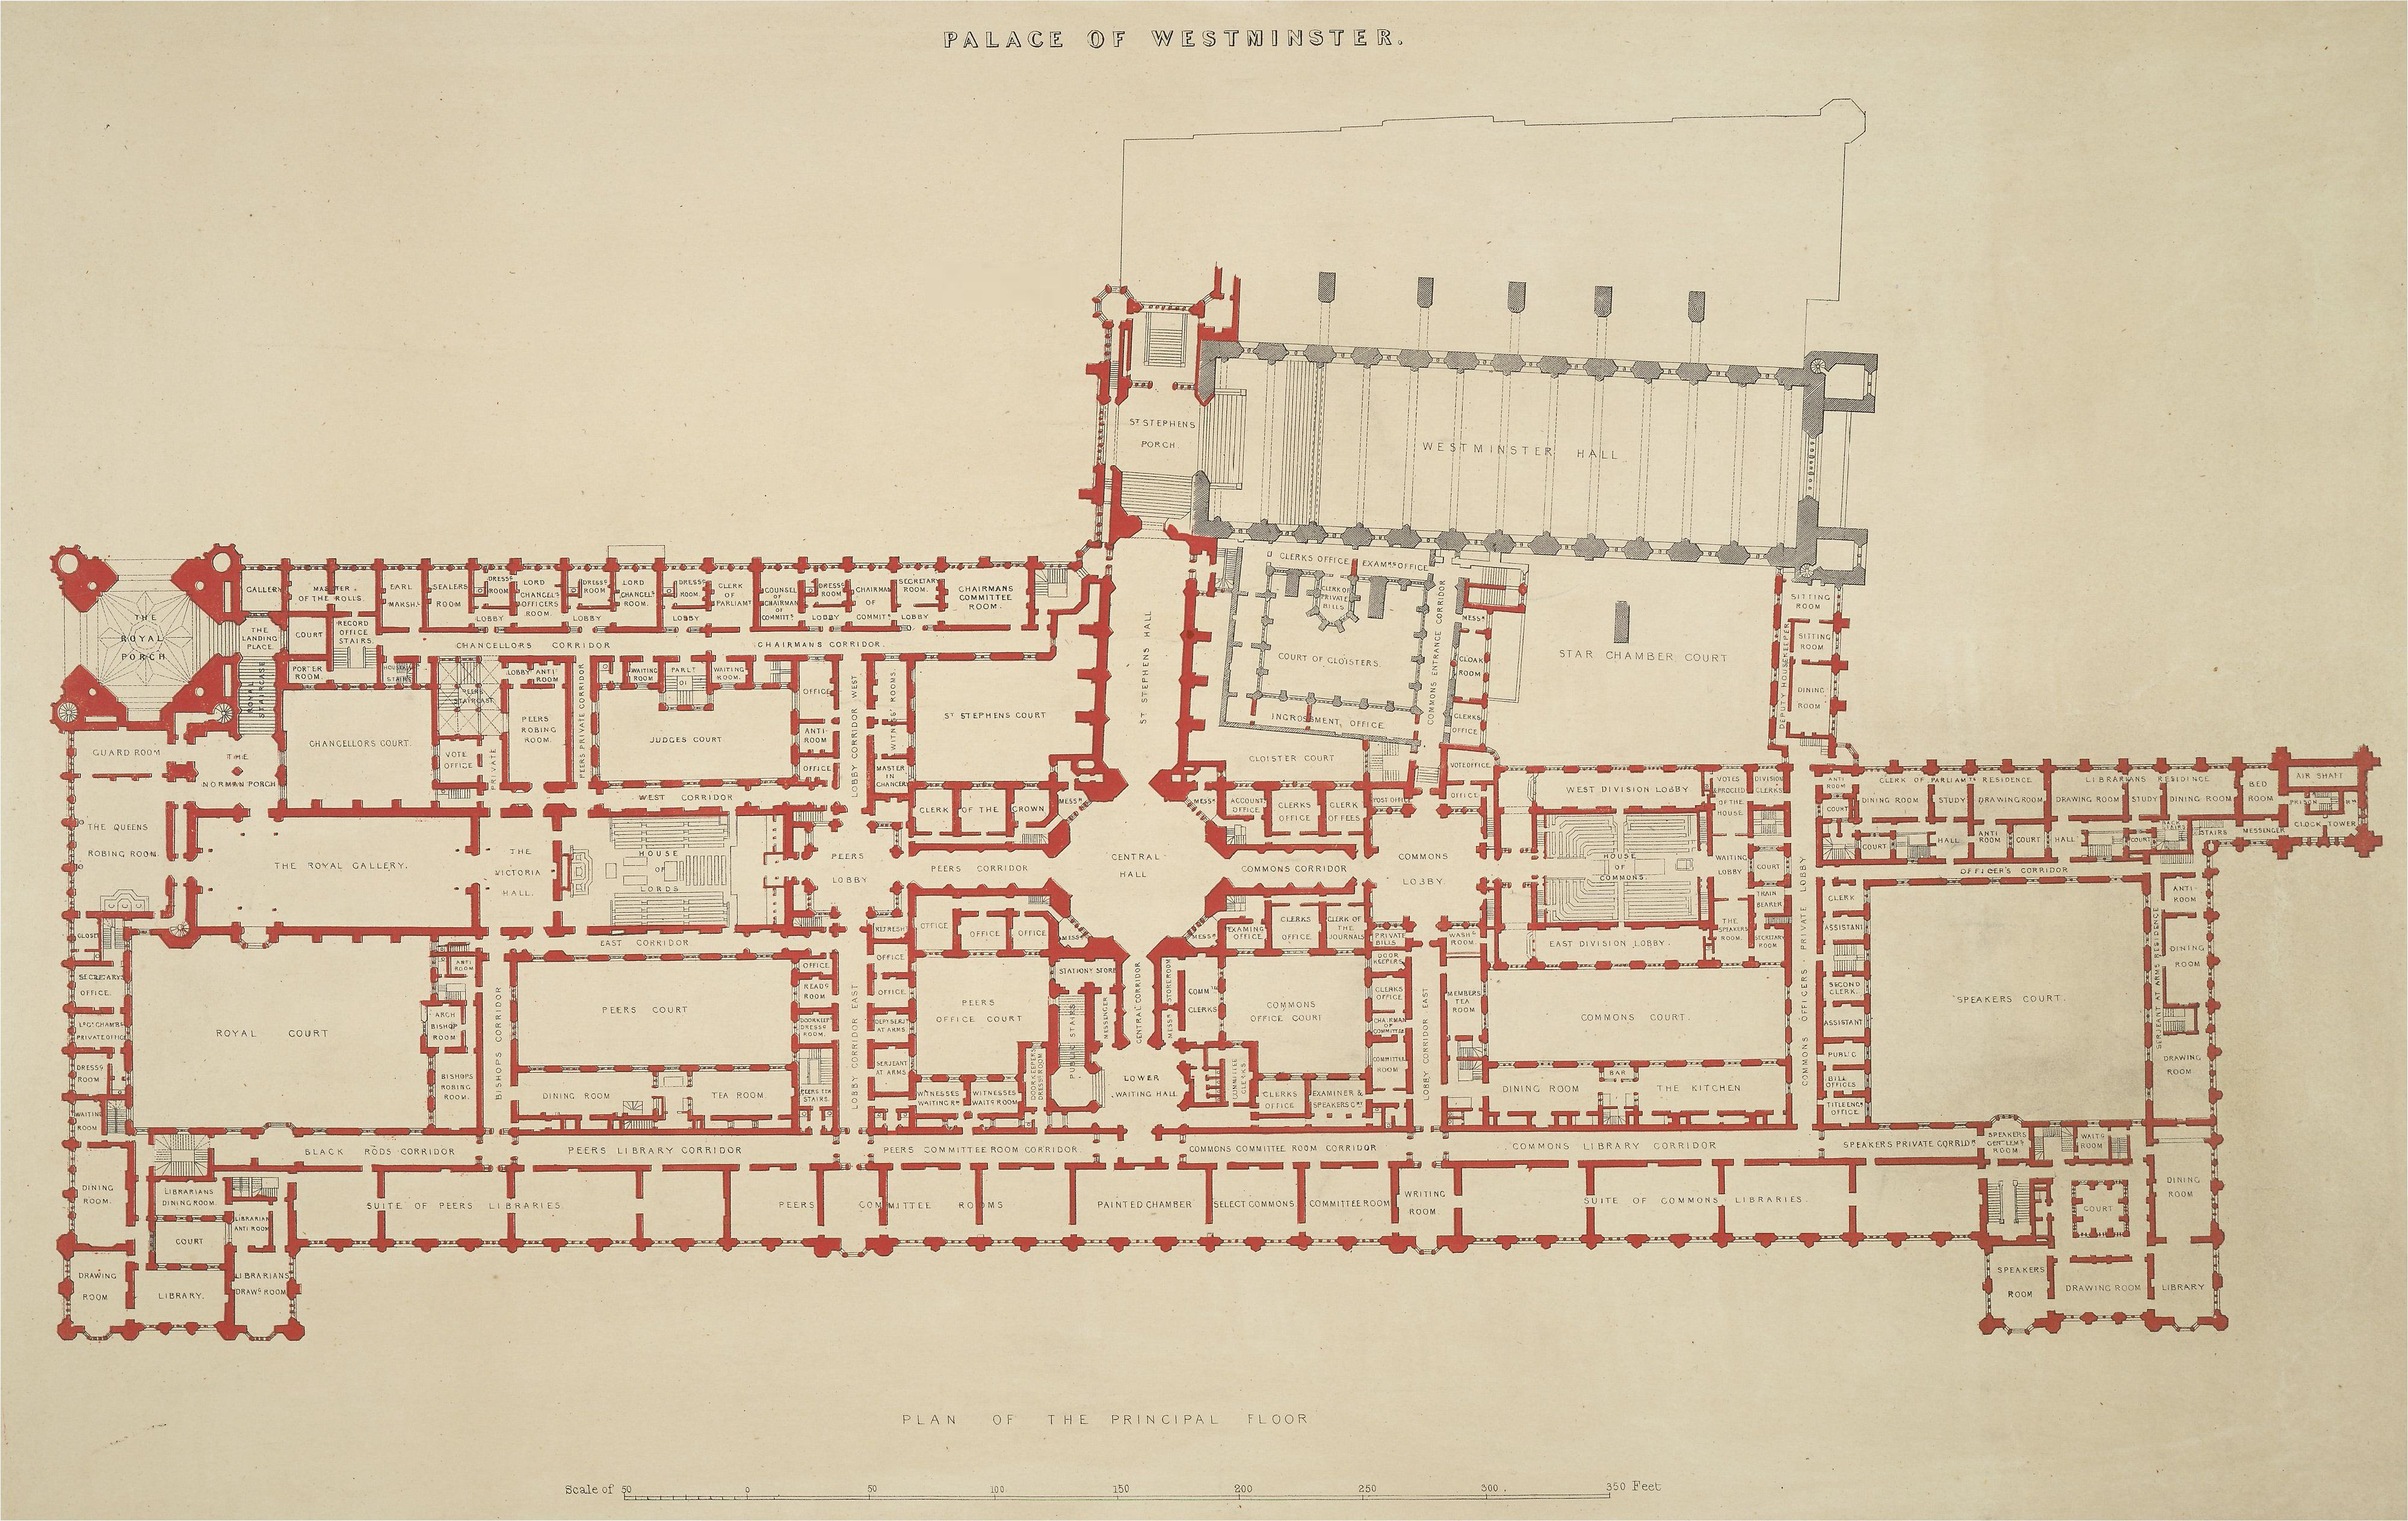 Westminster palace floor plan london england